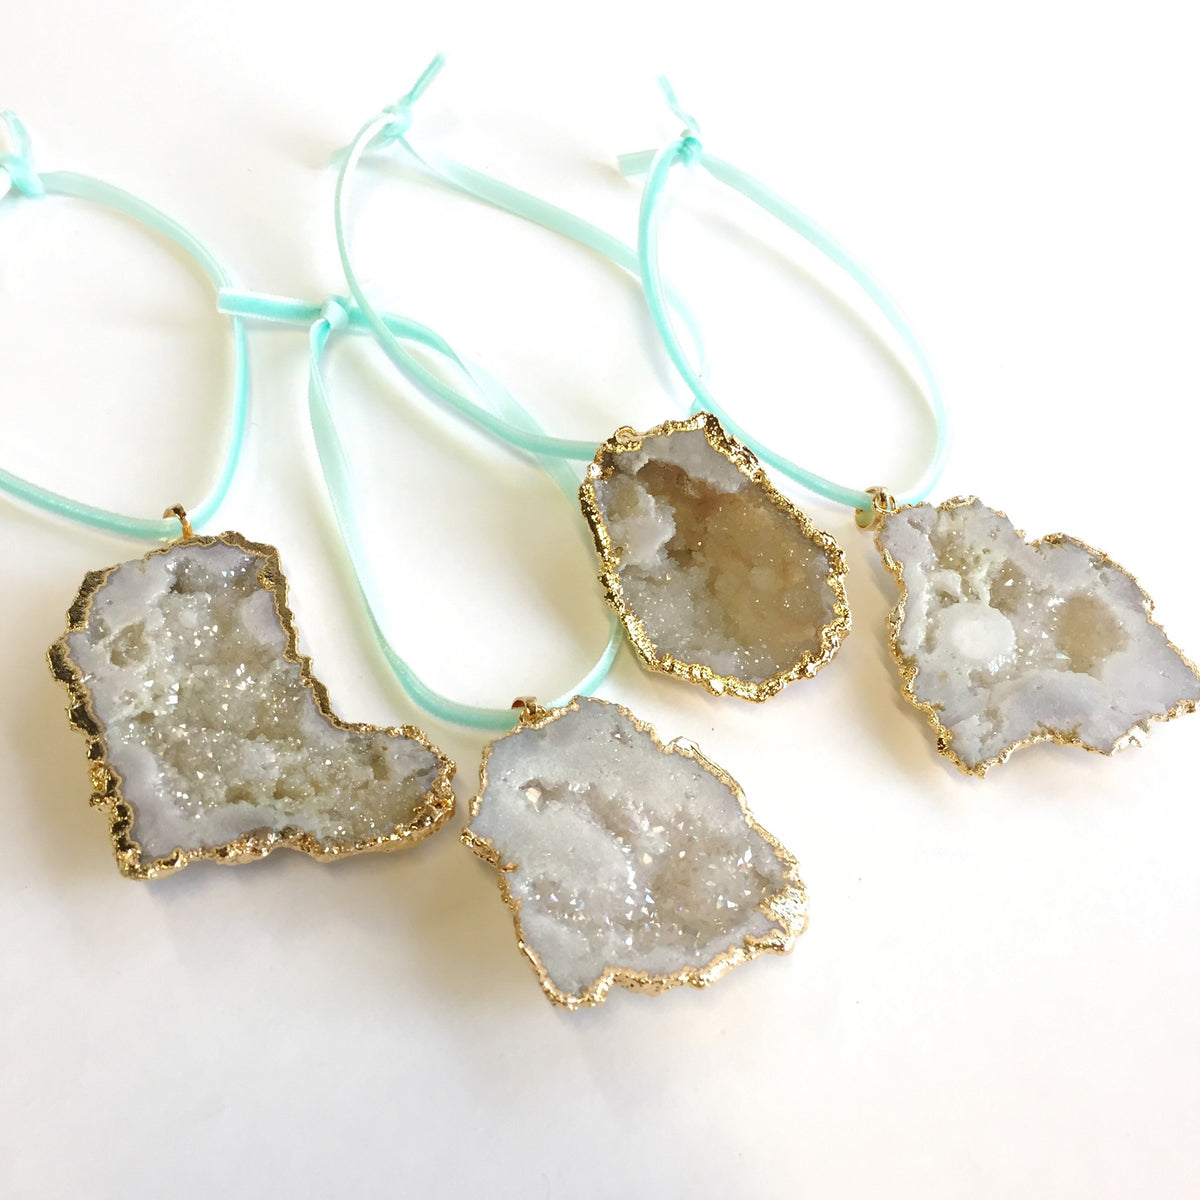 crystal-druzy-ornament